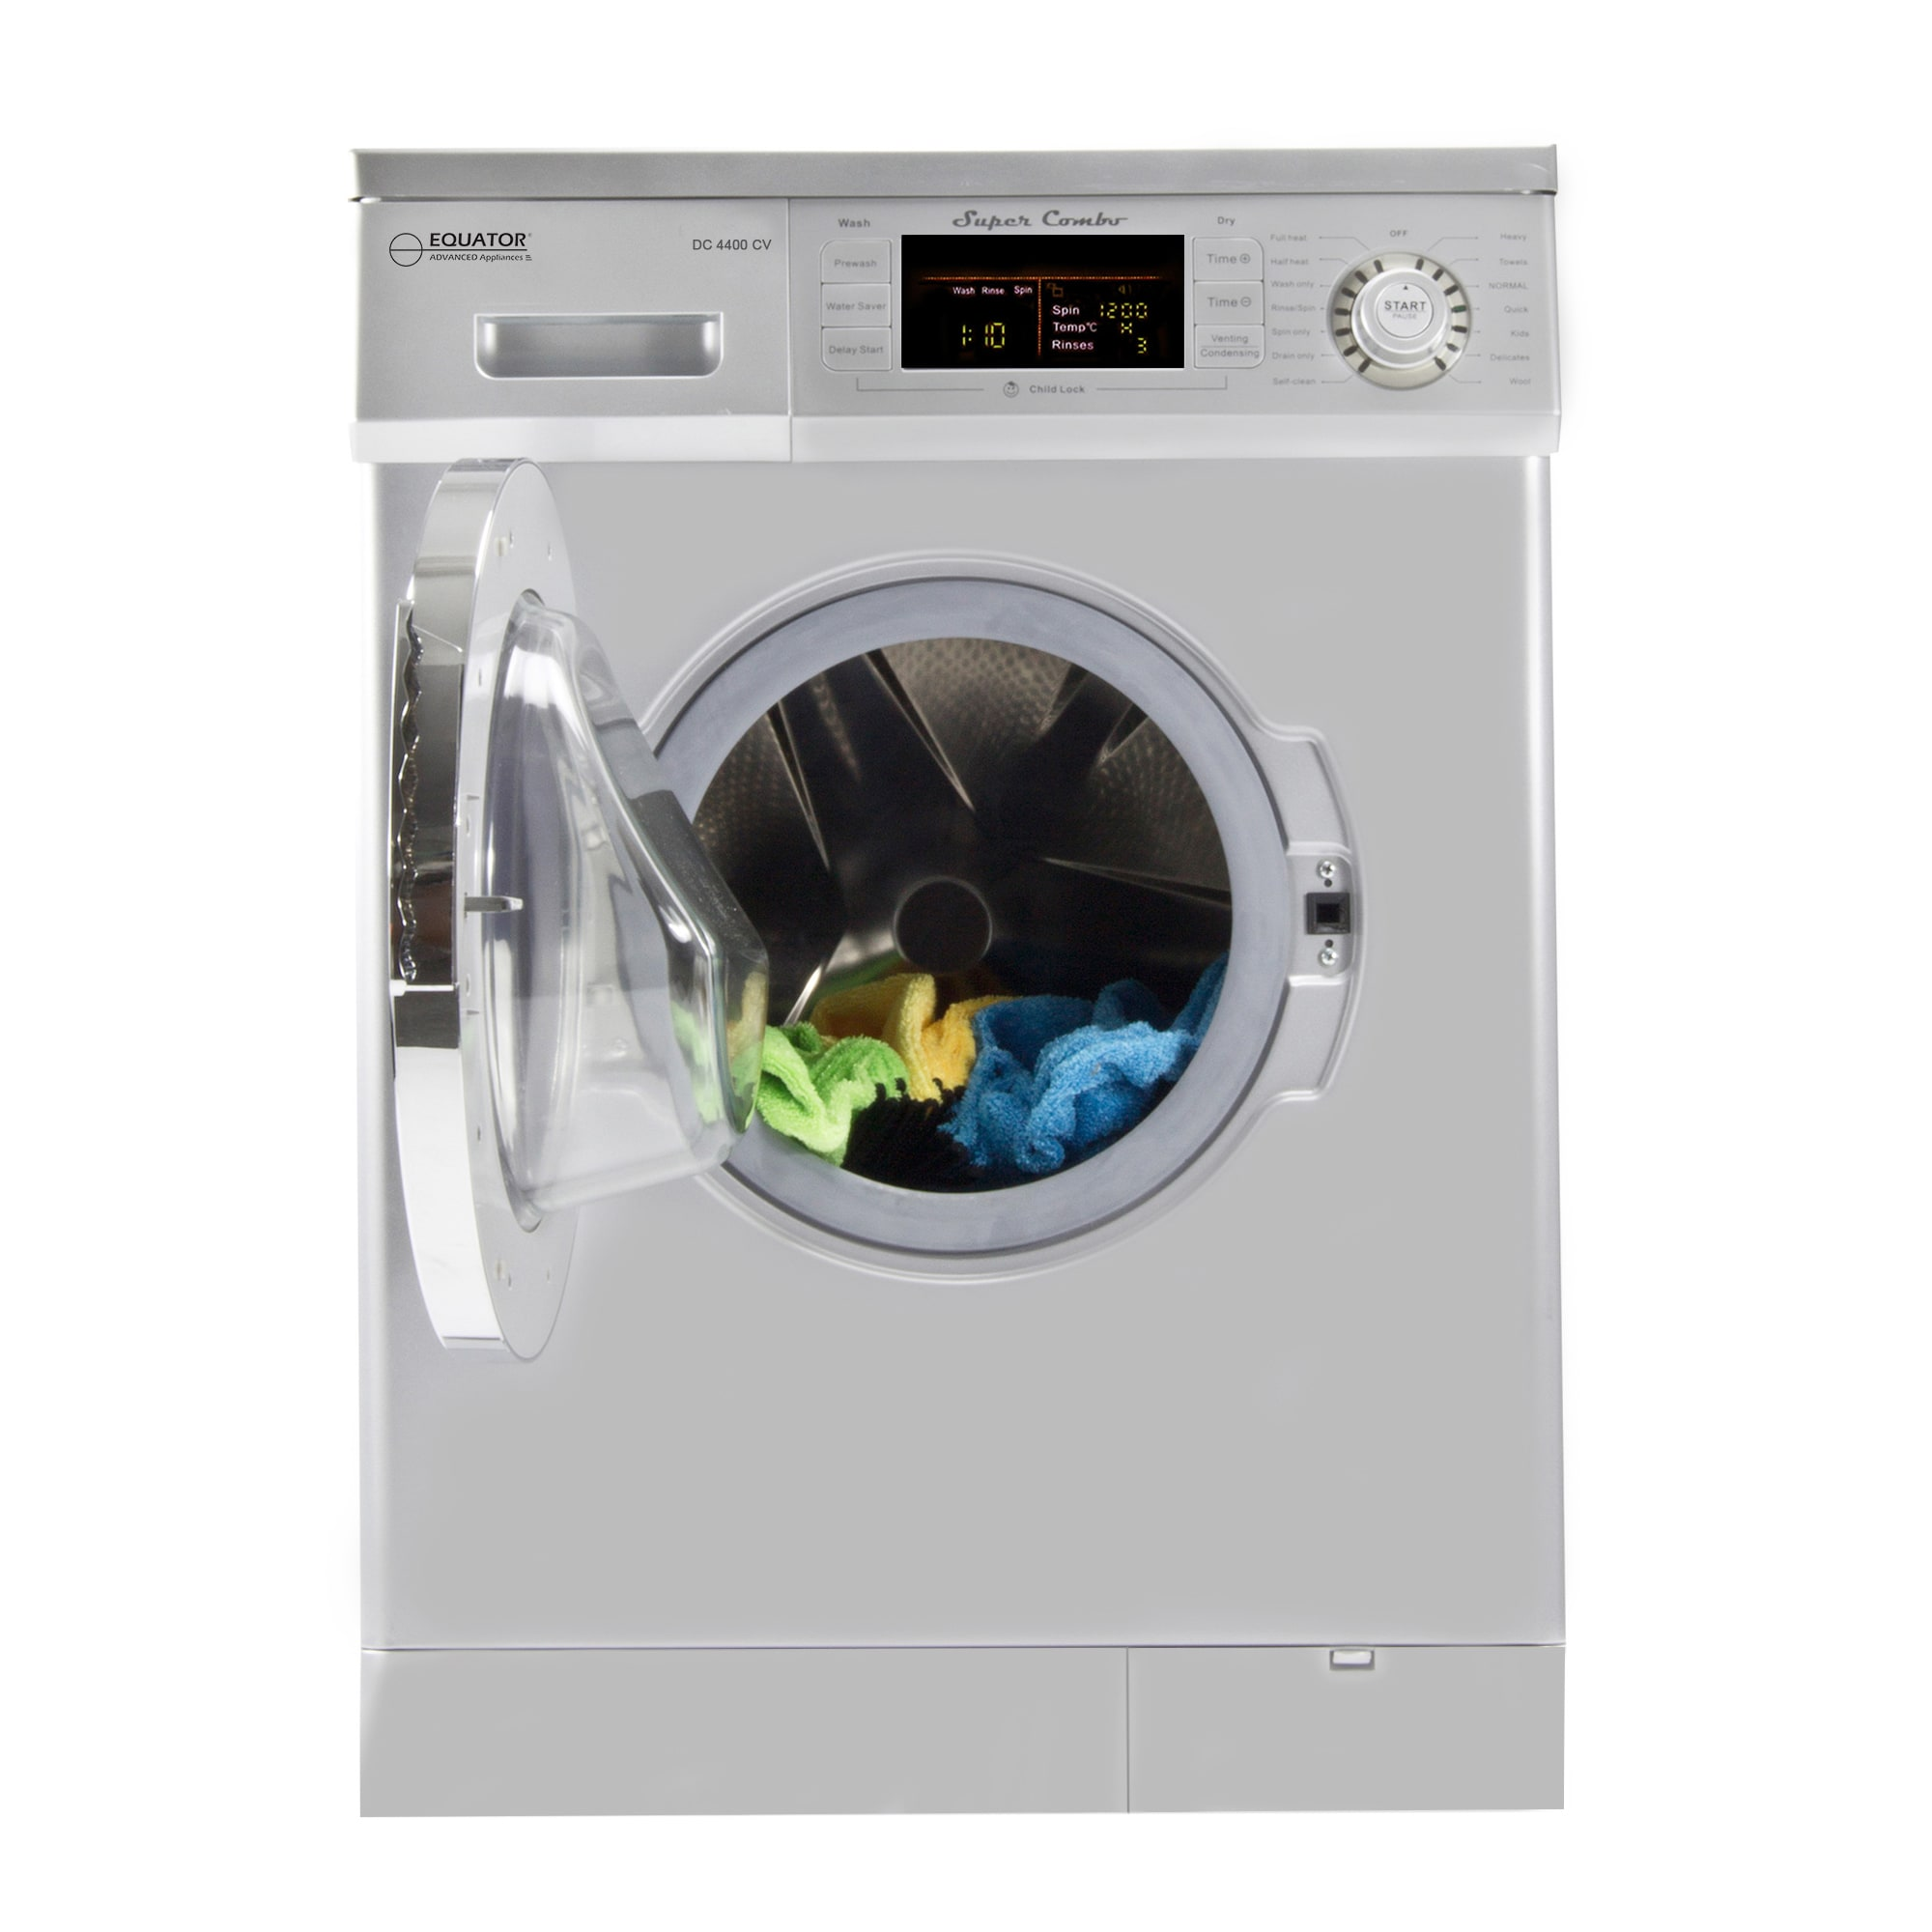 Equator 13 lbs All-in-One 1200 RPM Compact Combo Washer D...